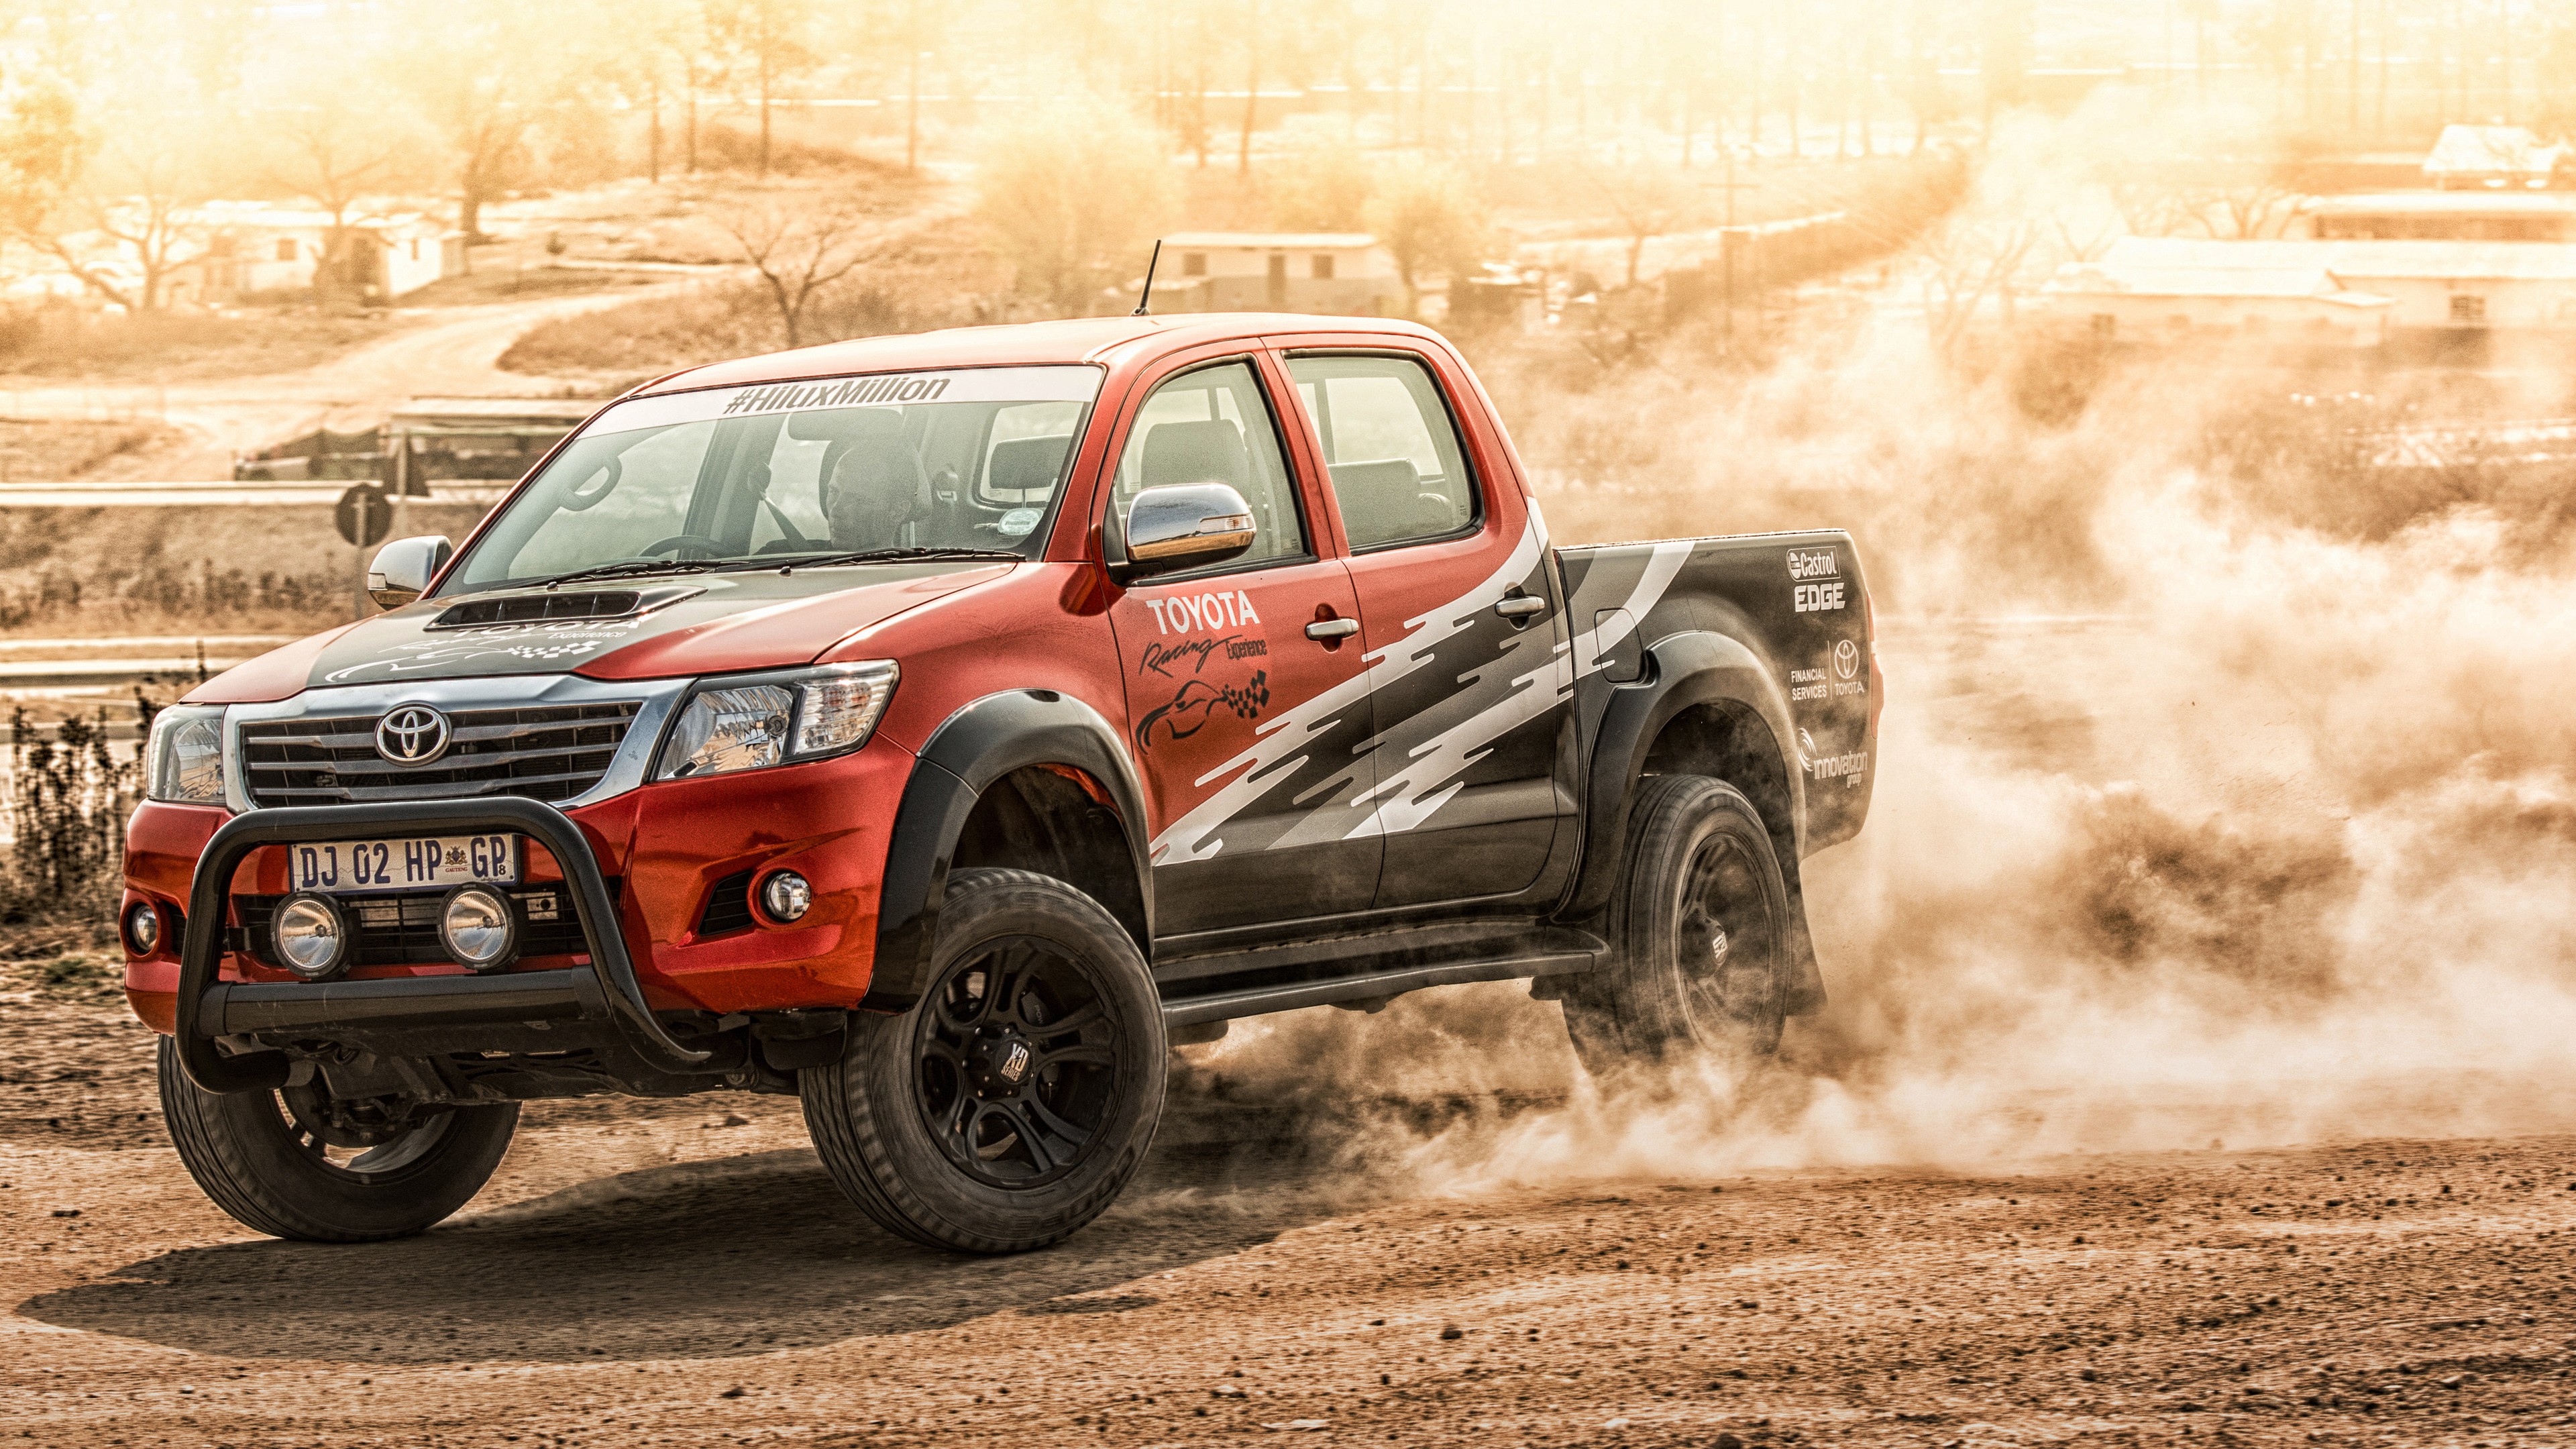 Toyota Hilux Wallpapers and Background Images   stmednet 3840x2160